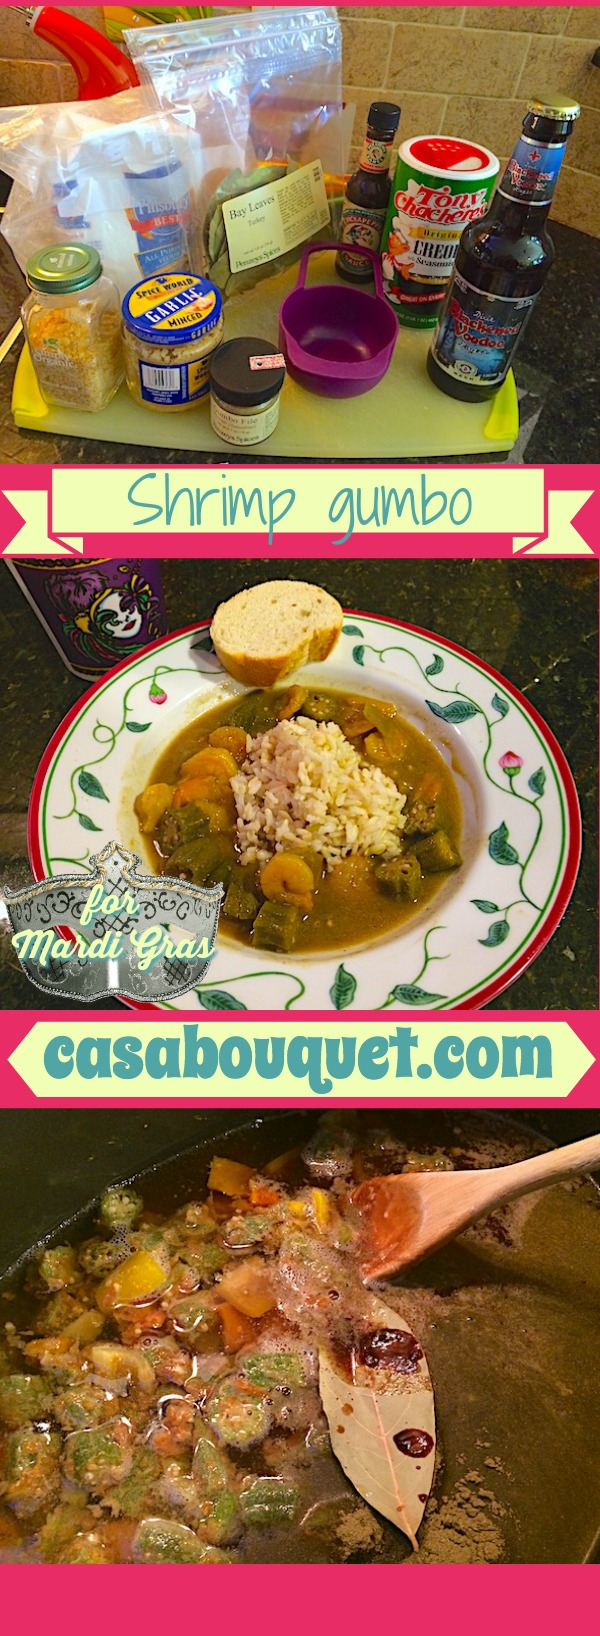 Shrimp gumbo, a Louisiana classic soup served with rice. Shrimp, okra, and gumbo file provide flavor, and you can add more seafood and chicken - tasty!